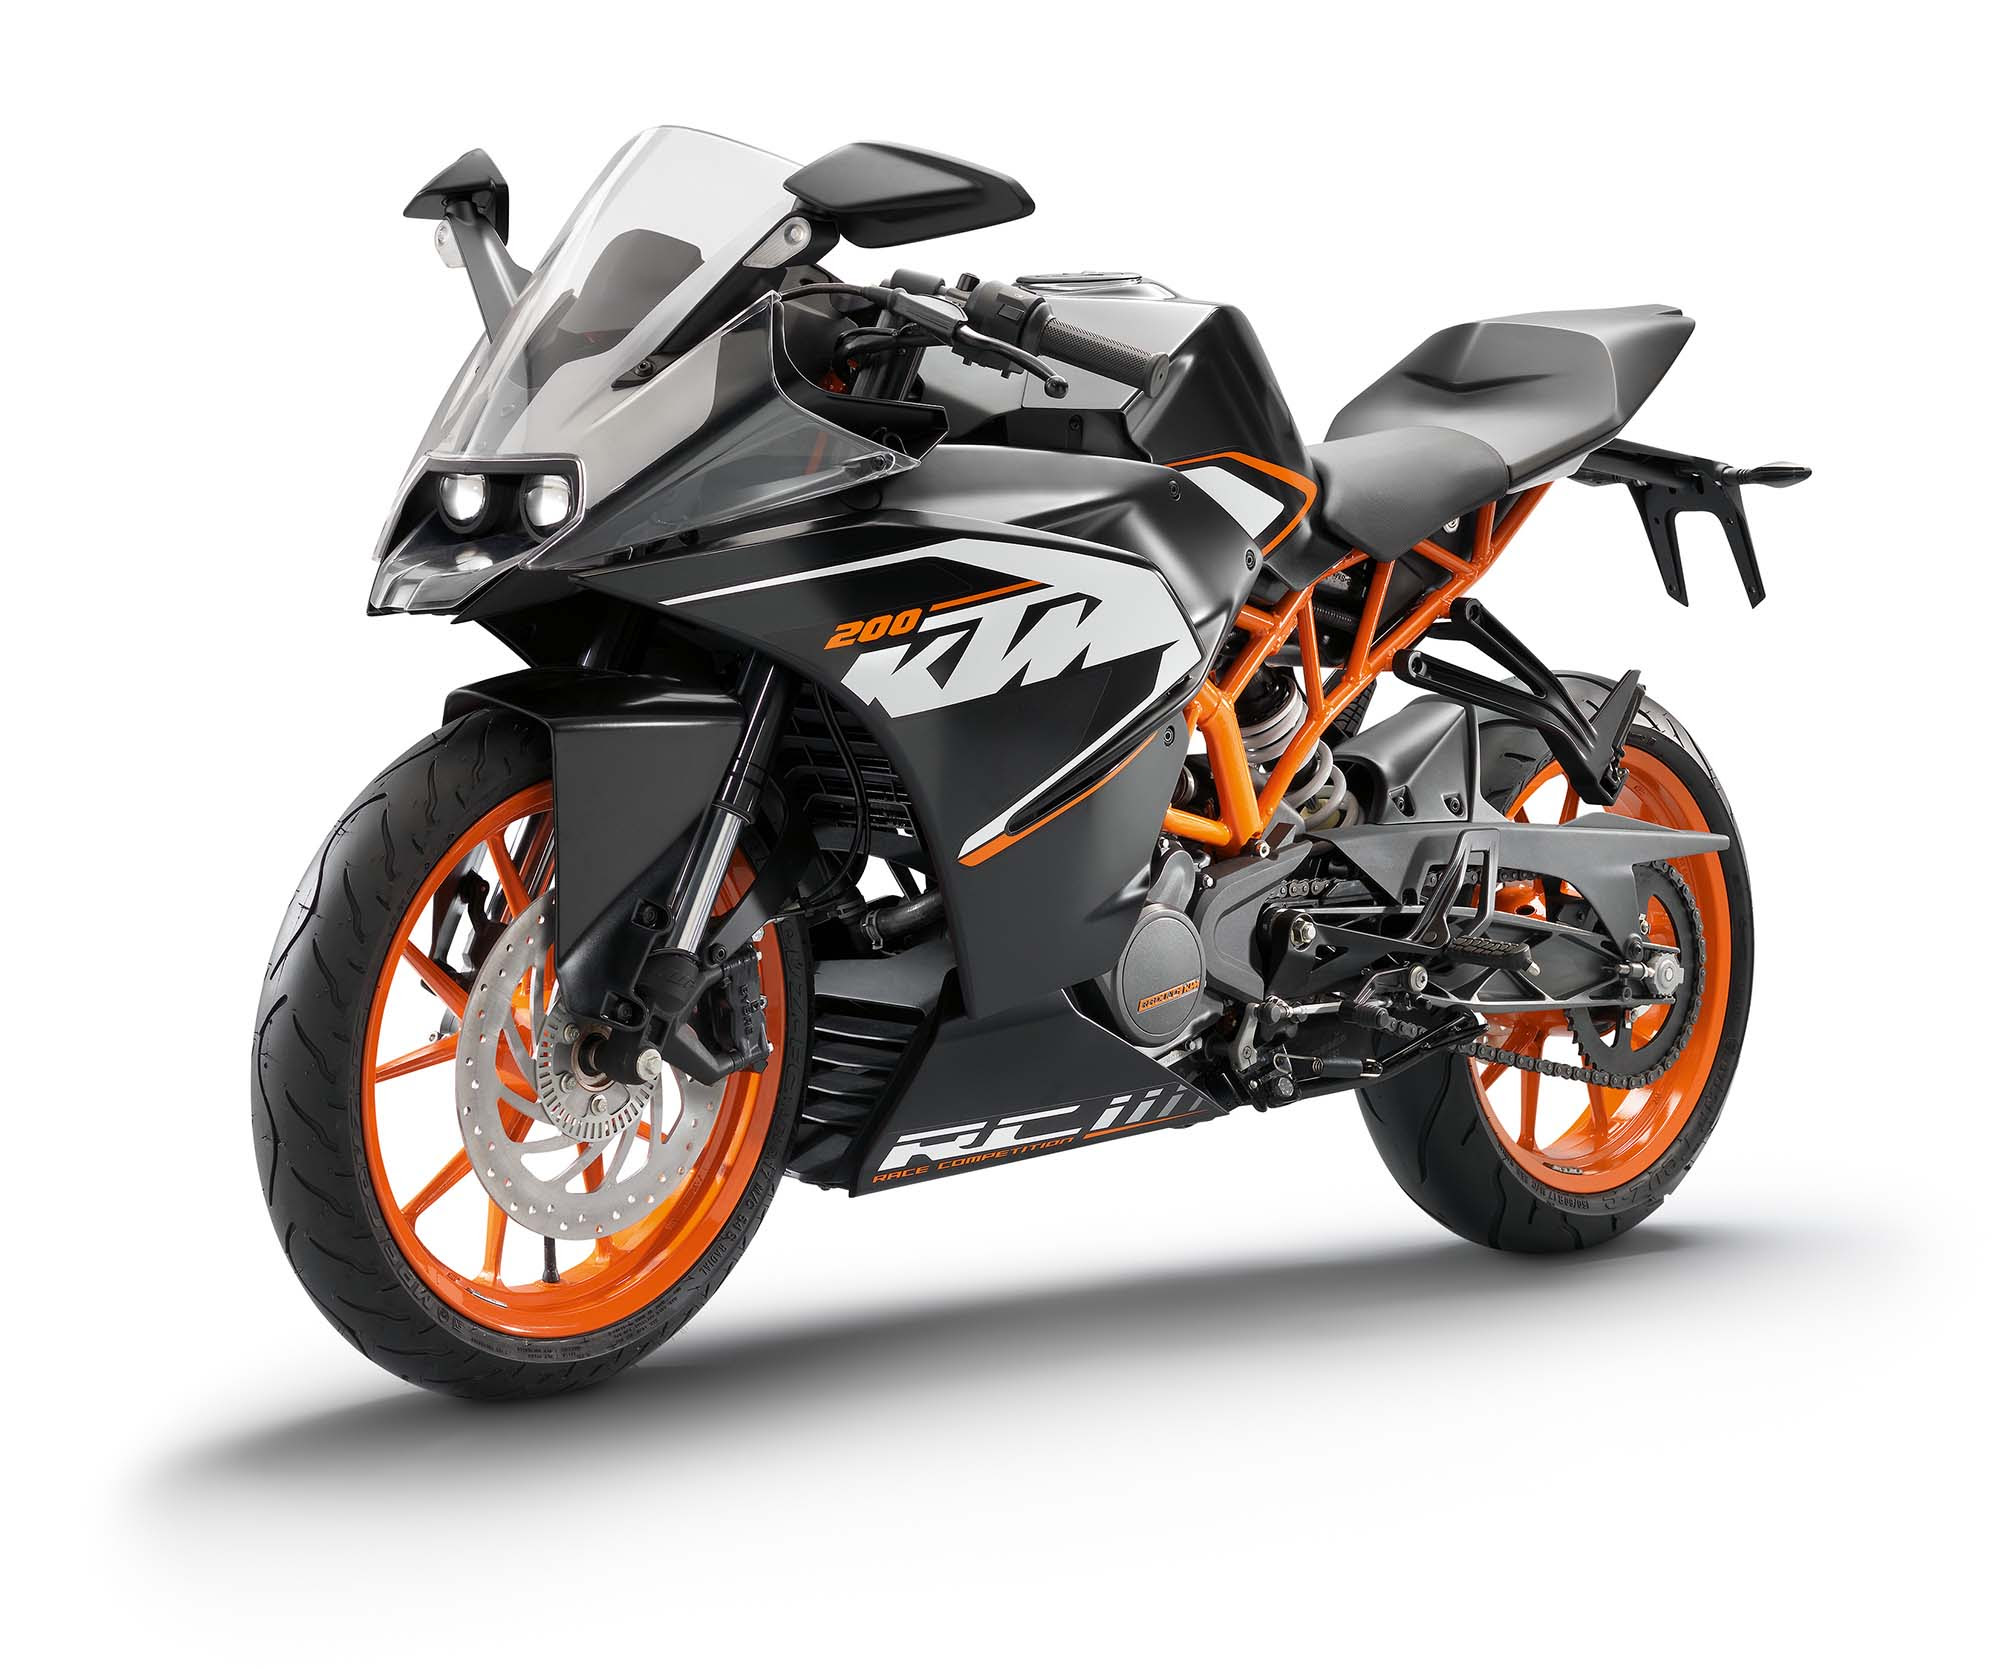 2014 KTM RC200 & KTM RC125 — The More the Merrier